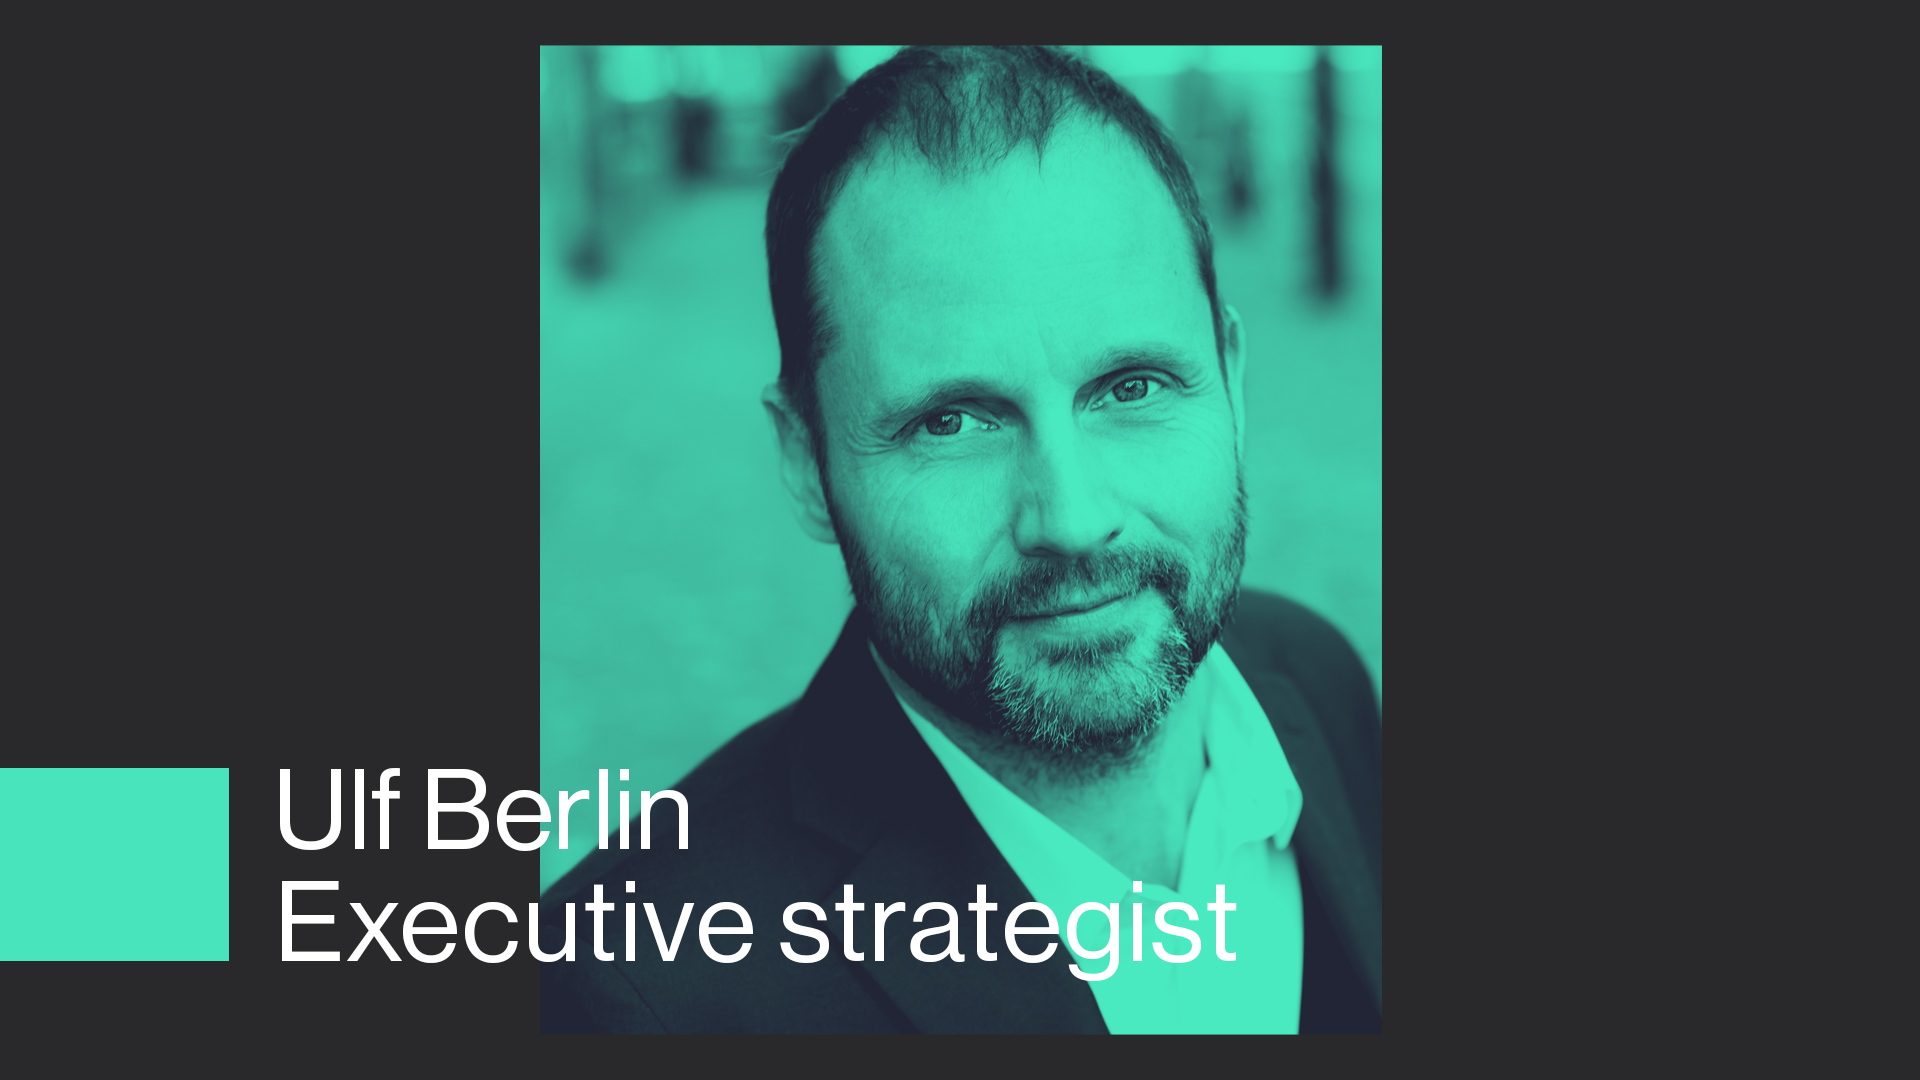 ulf berlin executive strategist designkontoret silver